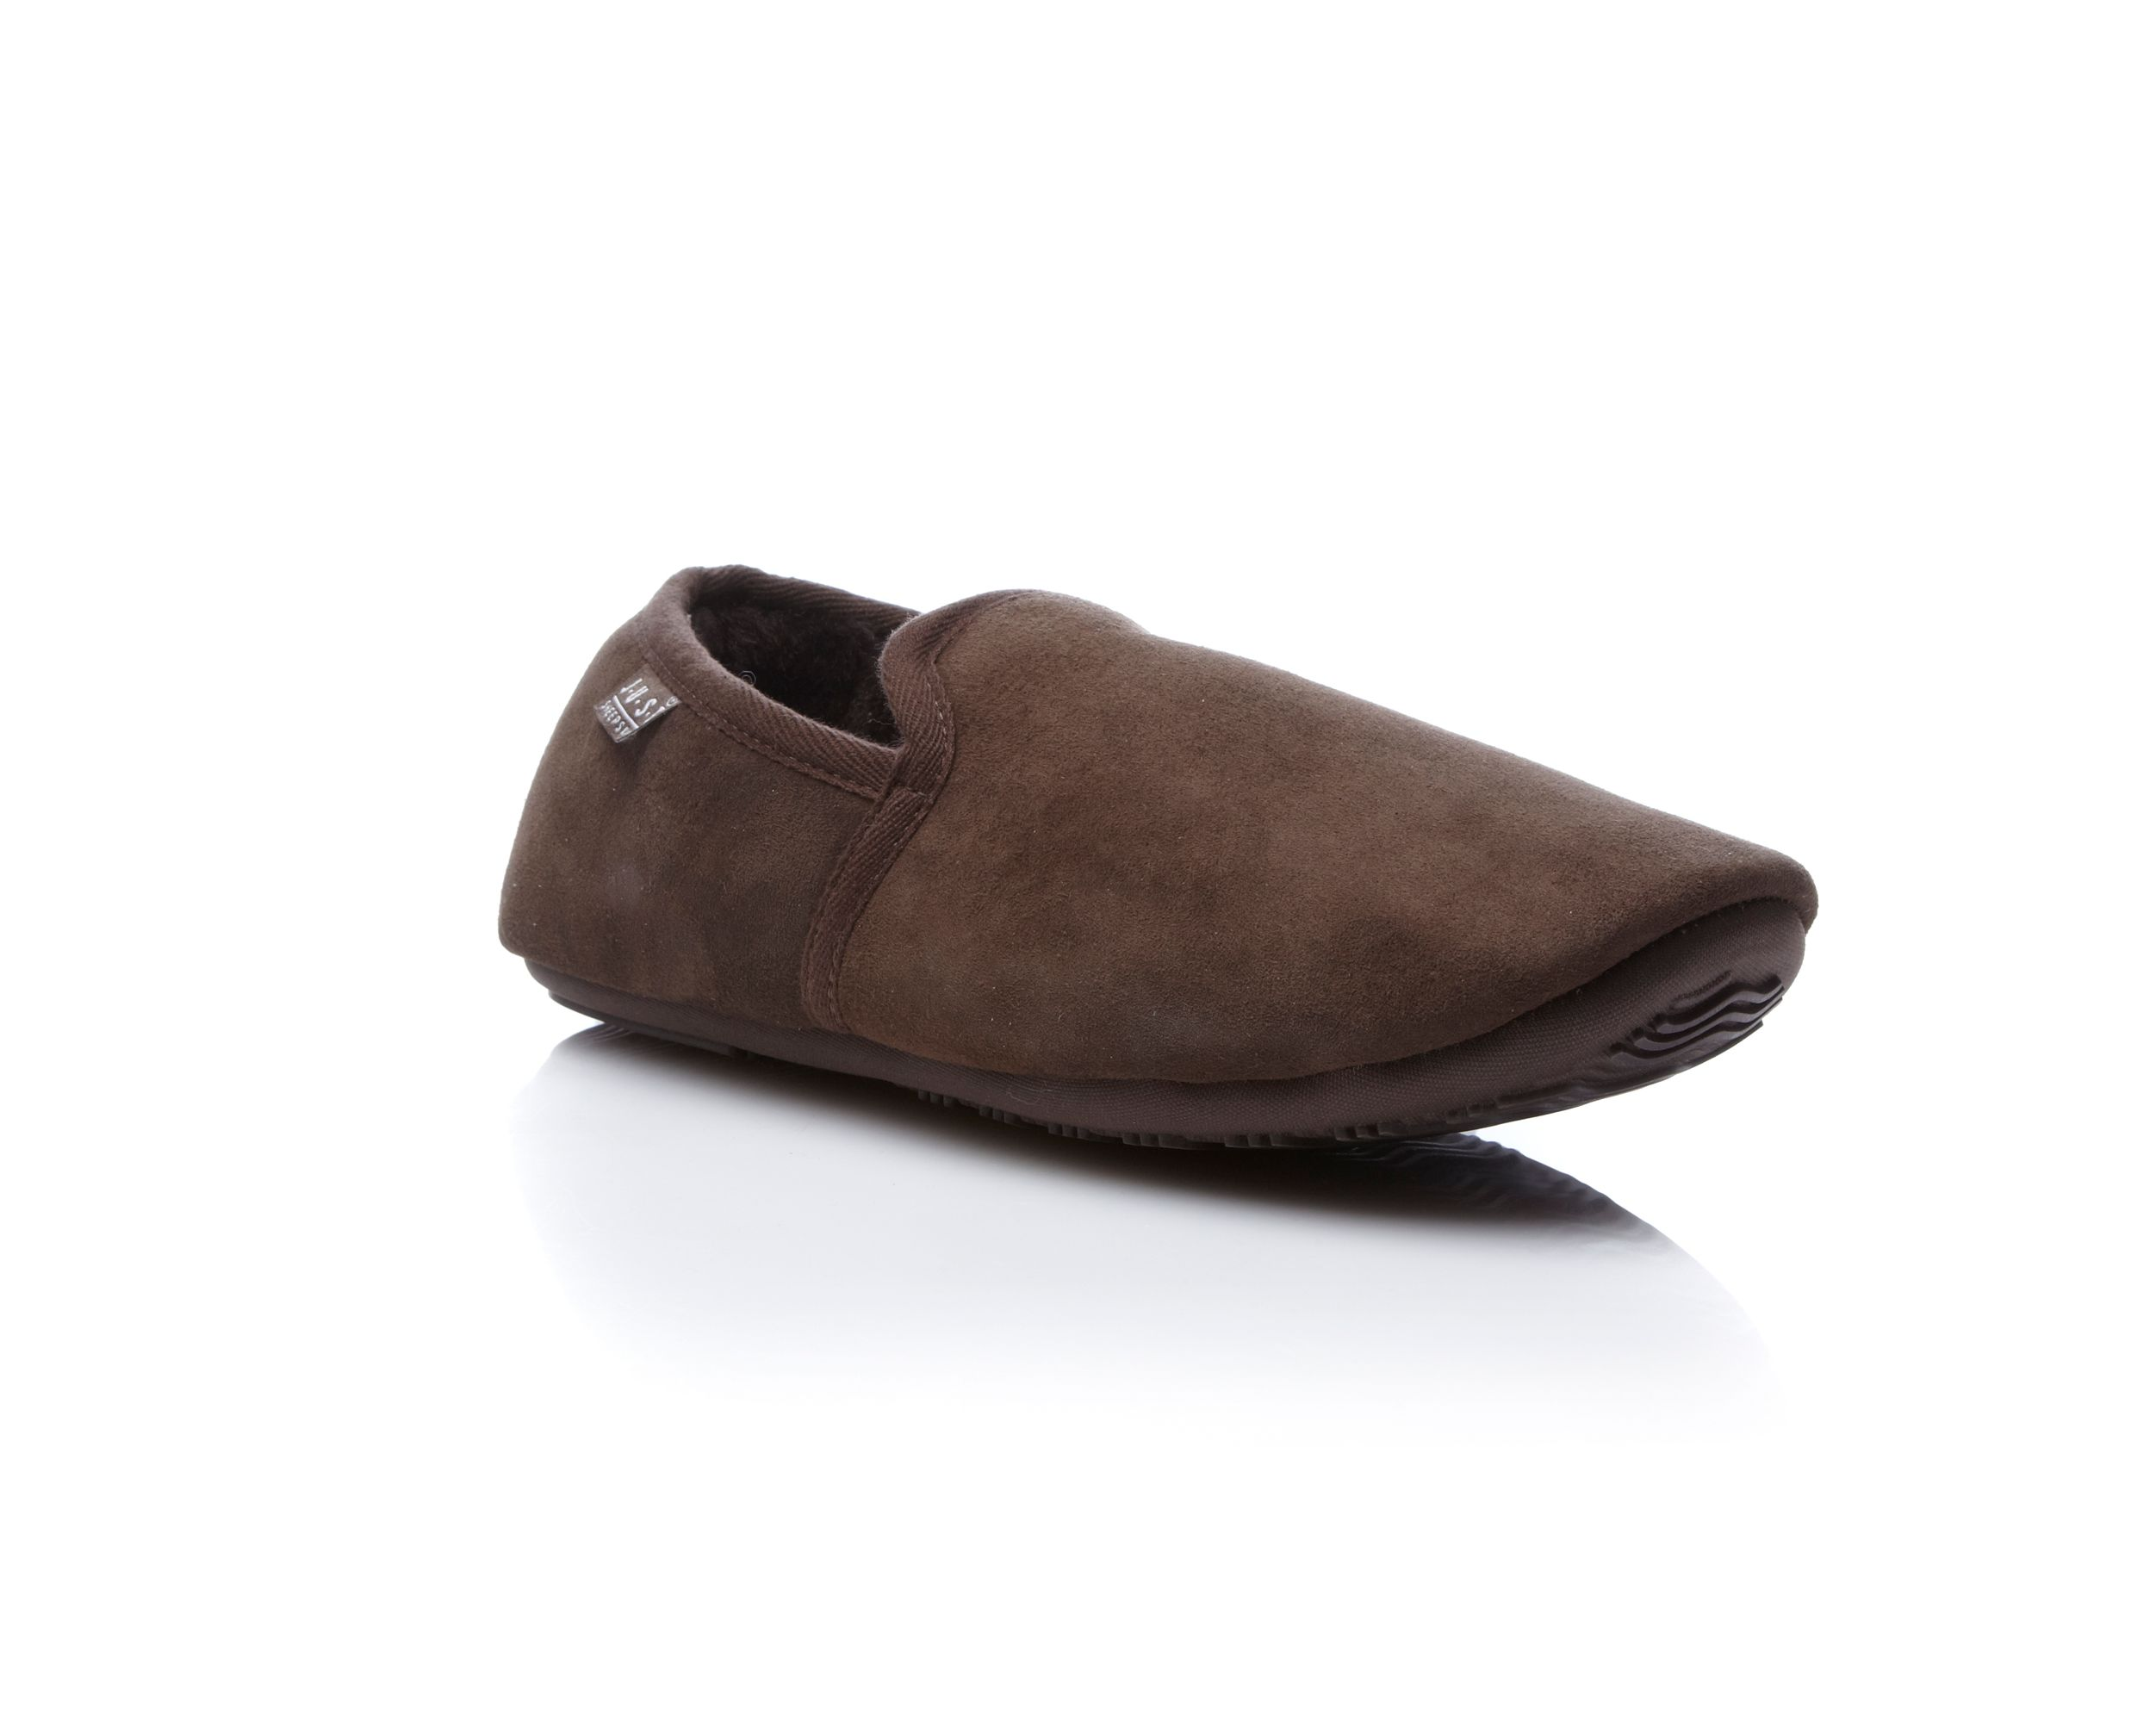 Garrick sheepskin full slip on slippers